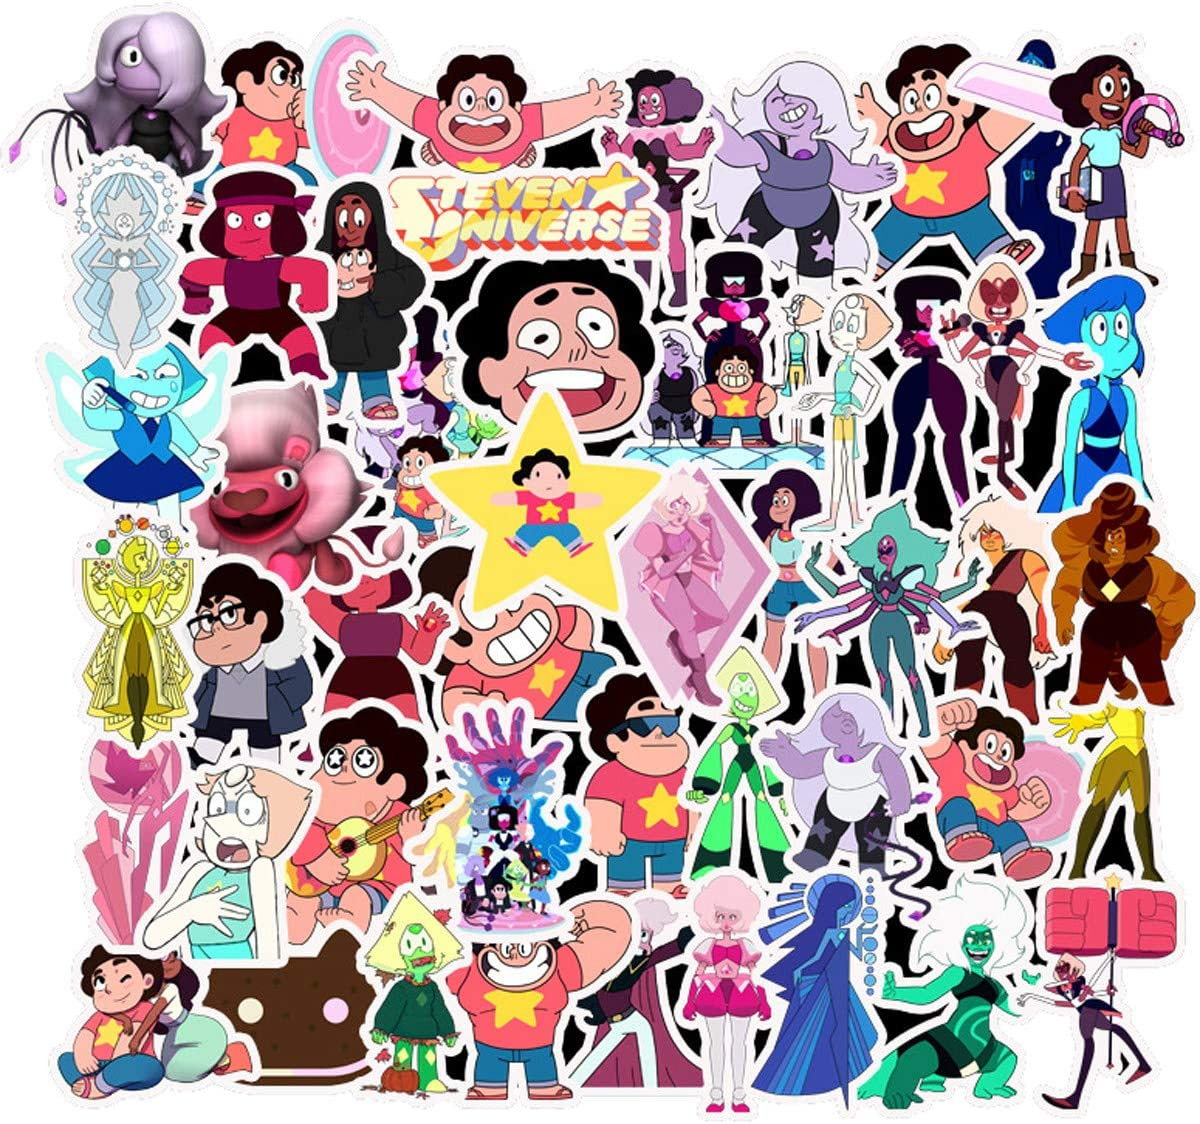 Decal Stickers 50 PCS Steven Universe Laptop Sticker Waterproof Vinyl Stickers Car Sticker Motorcycle Bicycle Luggage Decal Graffiti Patches Skateboard Sticker (Steven Universe)